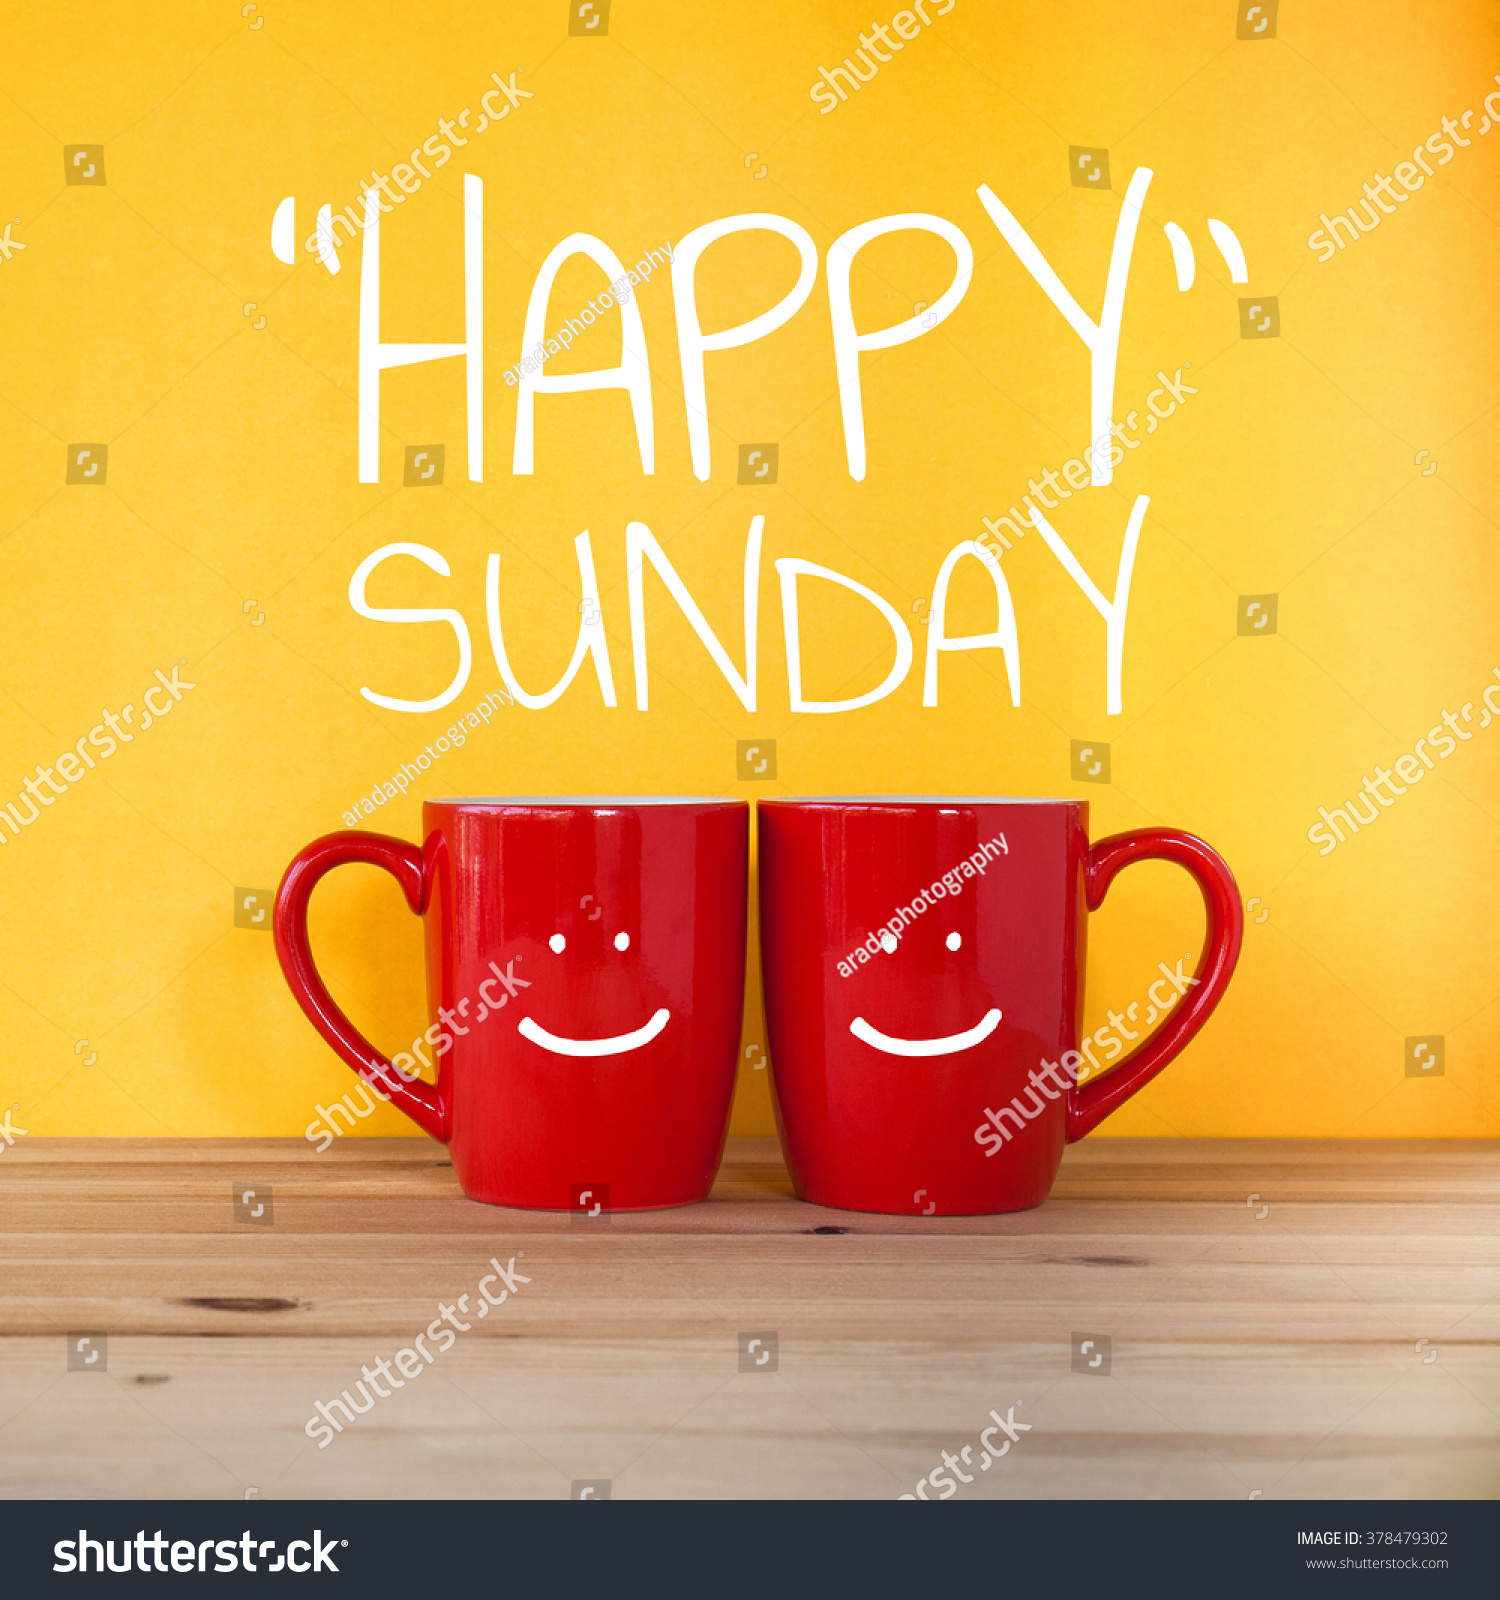 Happy Sunday Word Two Cups Coffee Stock Photo 378479302  Shutterstock